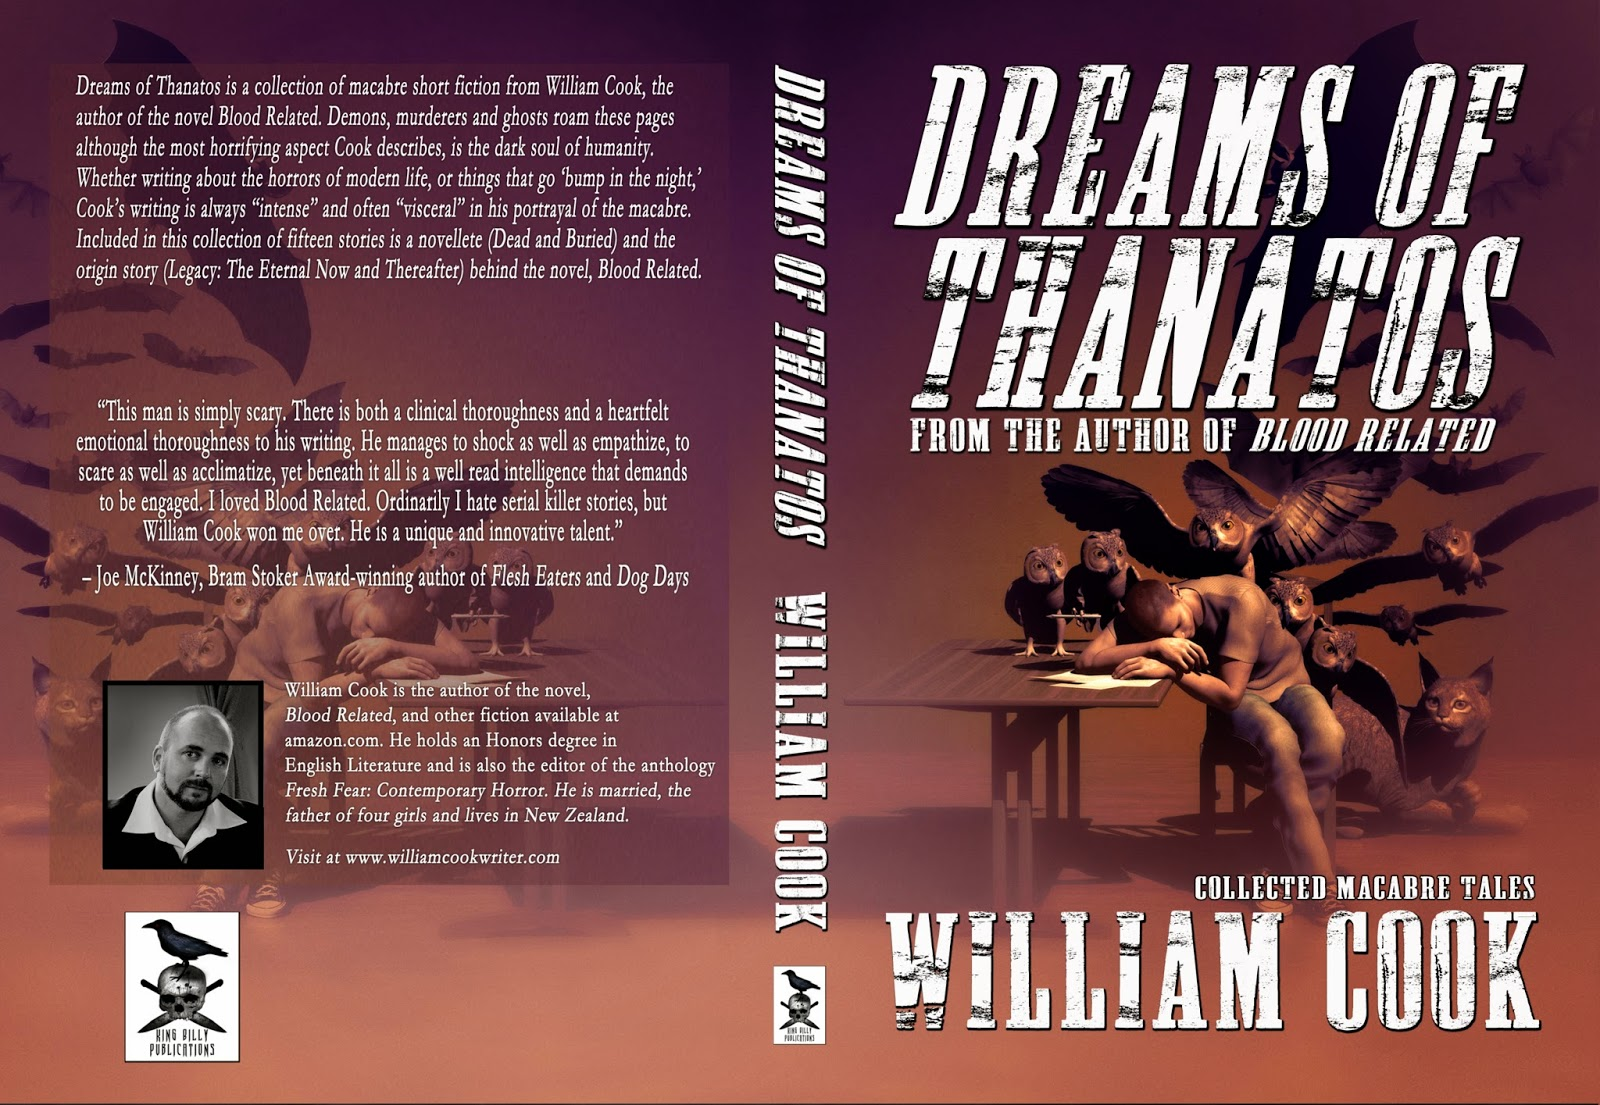 http://www.amazon.com/Dreams-Thanatos-Collected-Macabre-Tales/dp/1495994333/ref=la_B003PA513I_1_3?s=books&ie=UTF8&qid=1405901050&sr=1-3